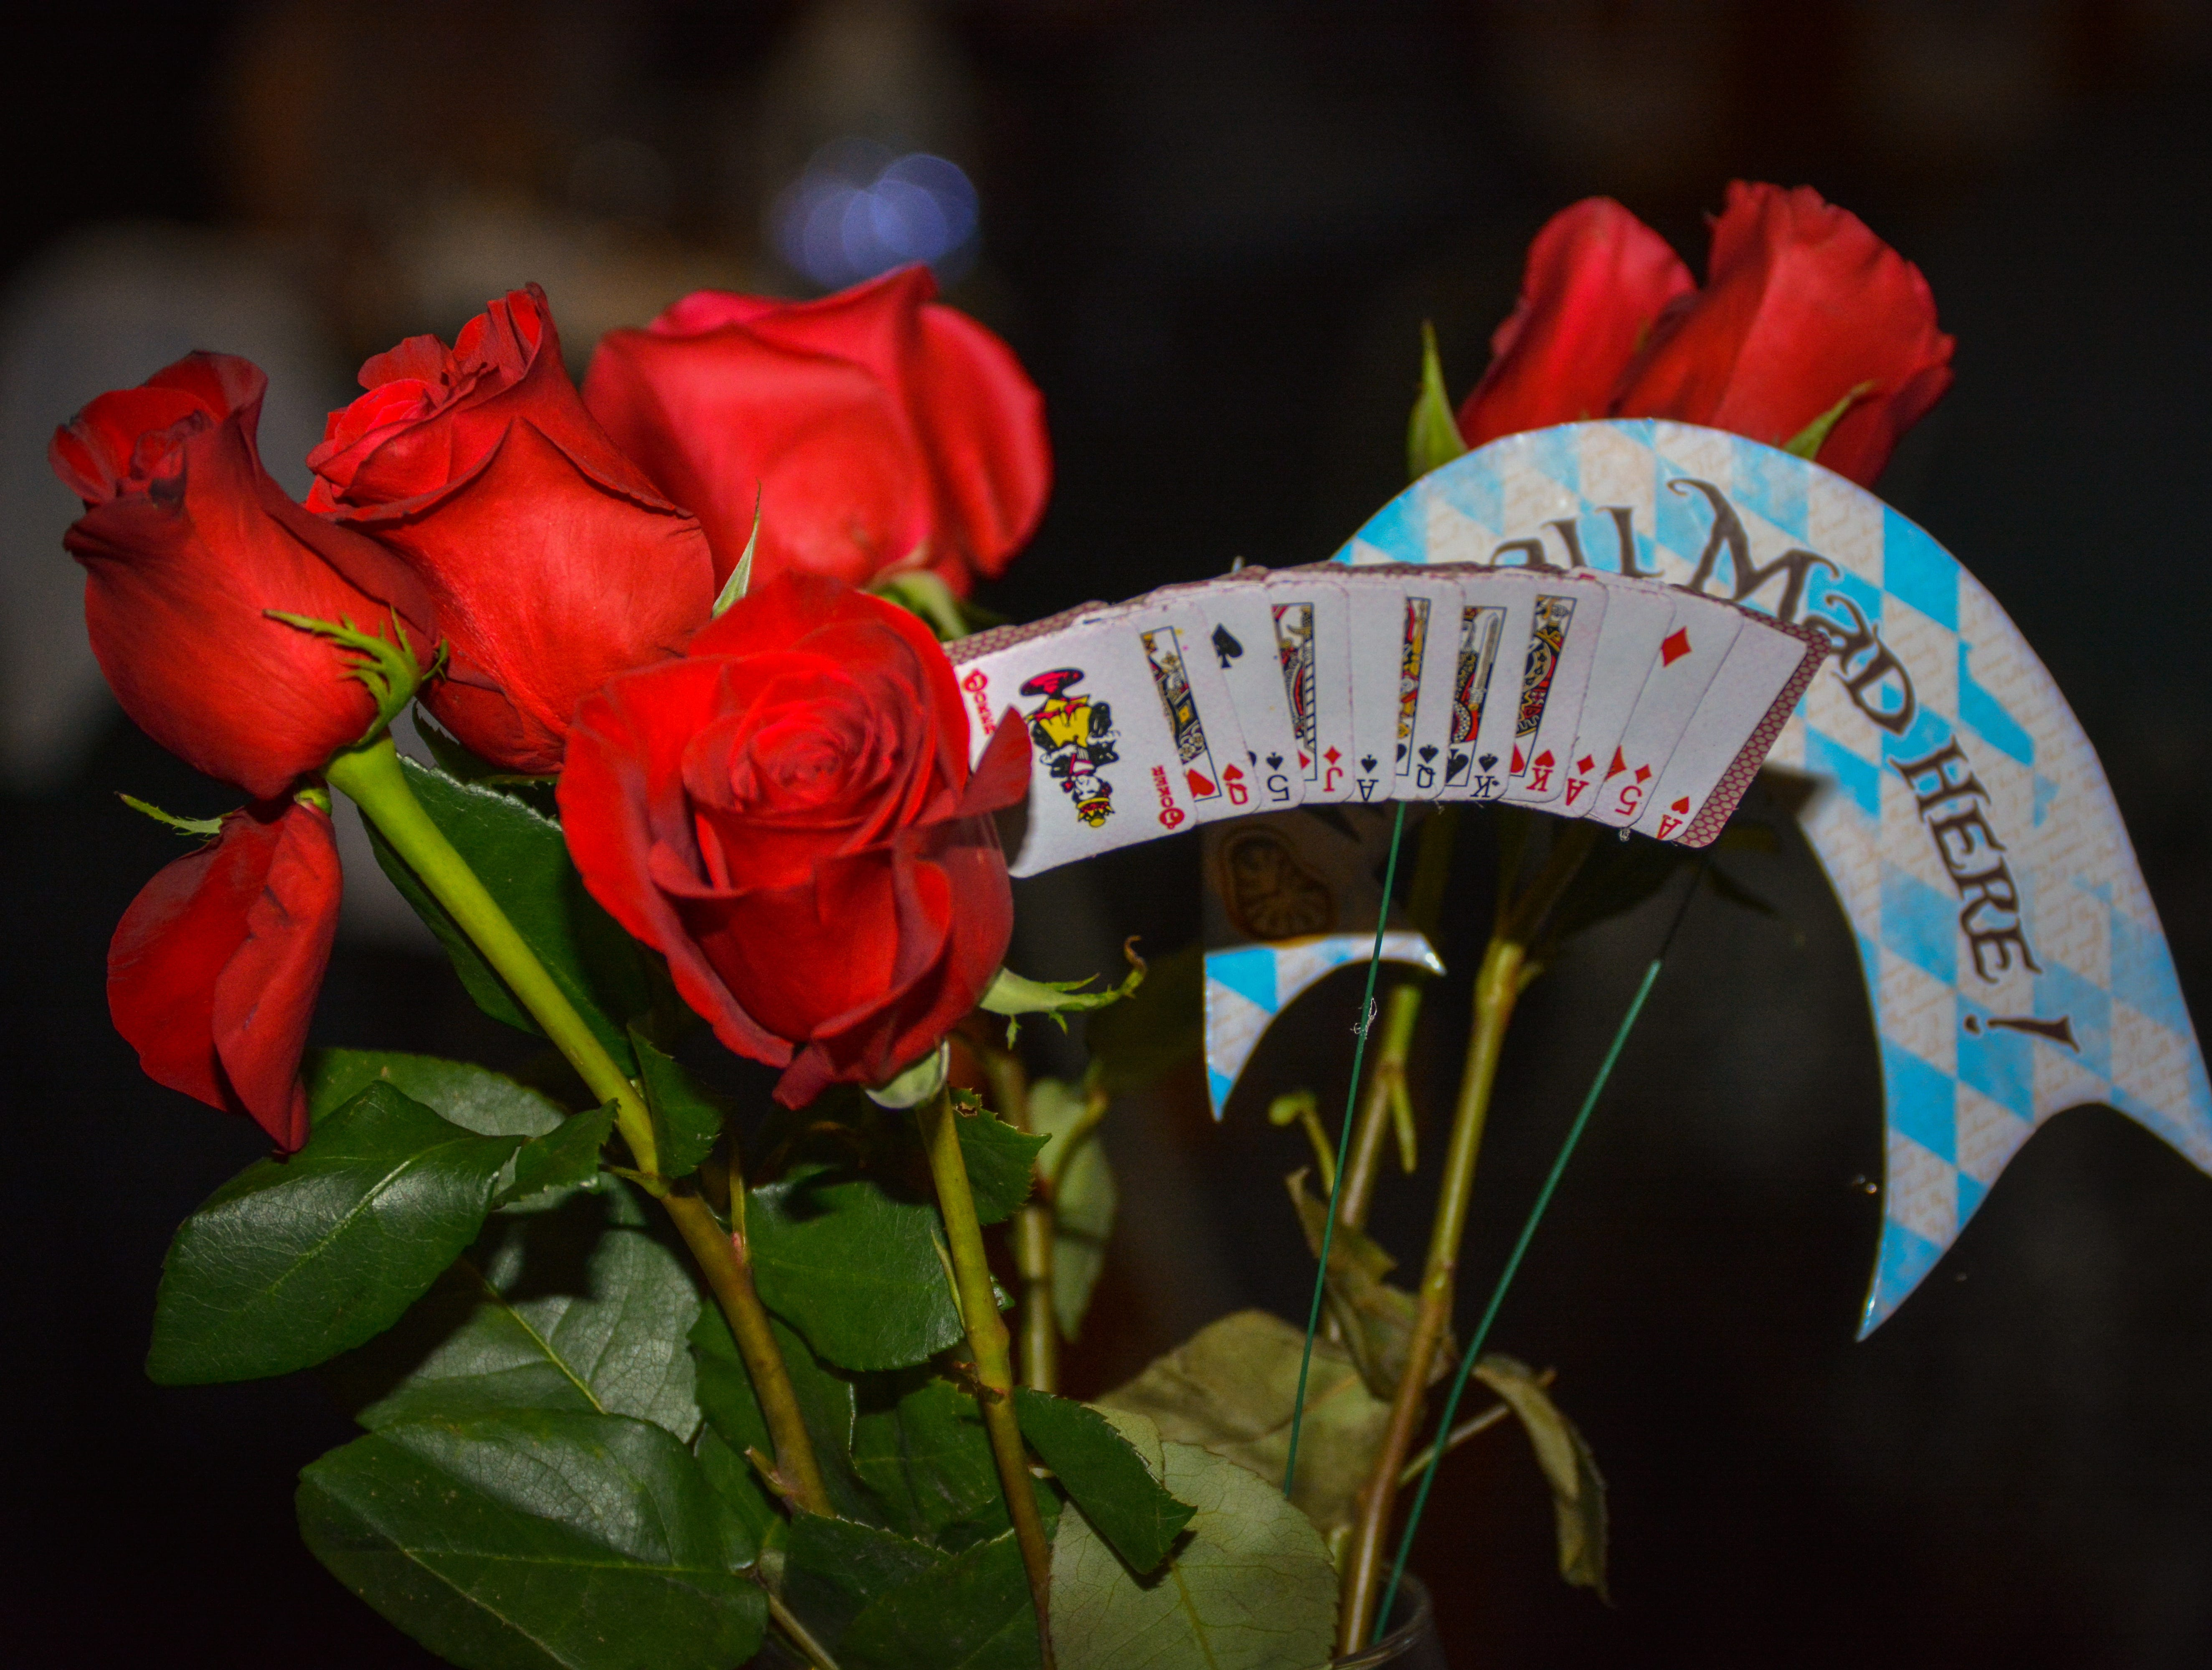 """A flower display at the Minds in Motion Museum """"A Wonderland Adventure Gala"""" on Nov. 3, 2018, held at the Wicomico Youth & Civic Center in Salisbury, Maryland."""